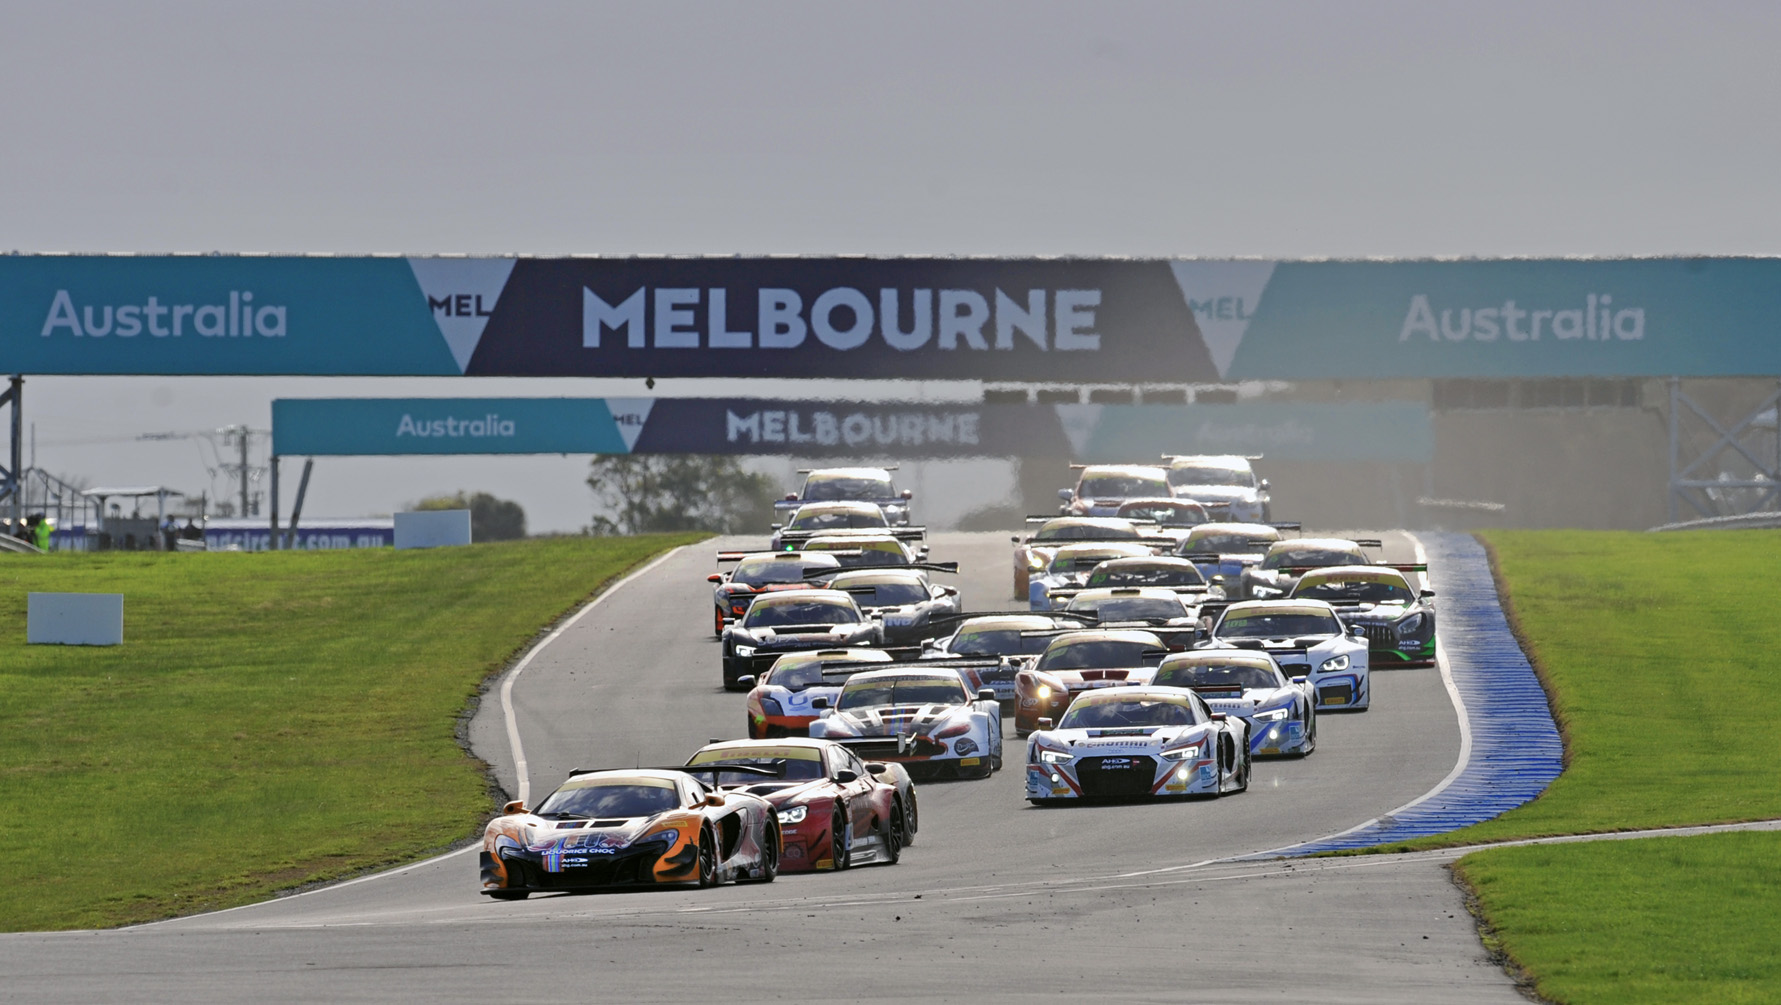 Live coverage of Australian Endurance Championship set to bring fans closer to the action